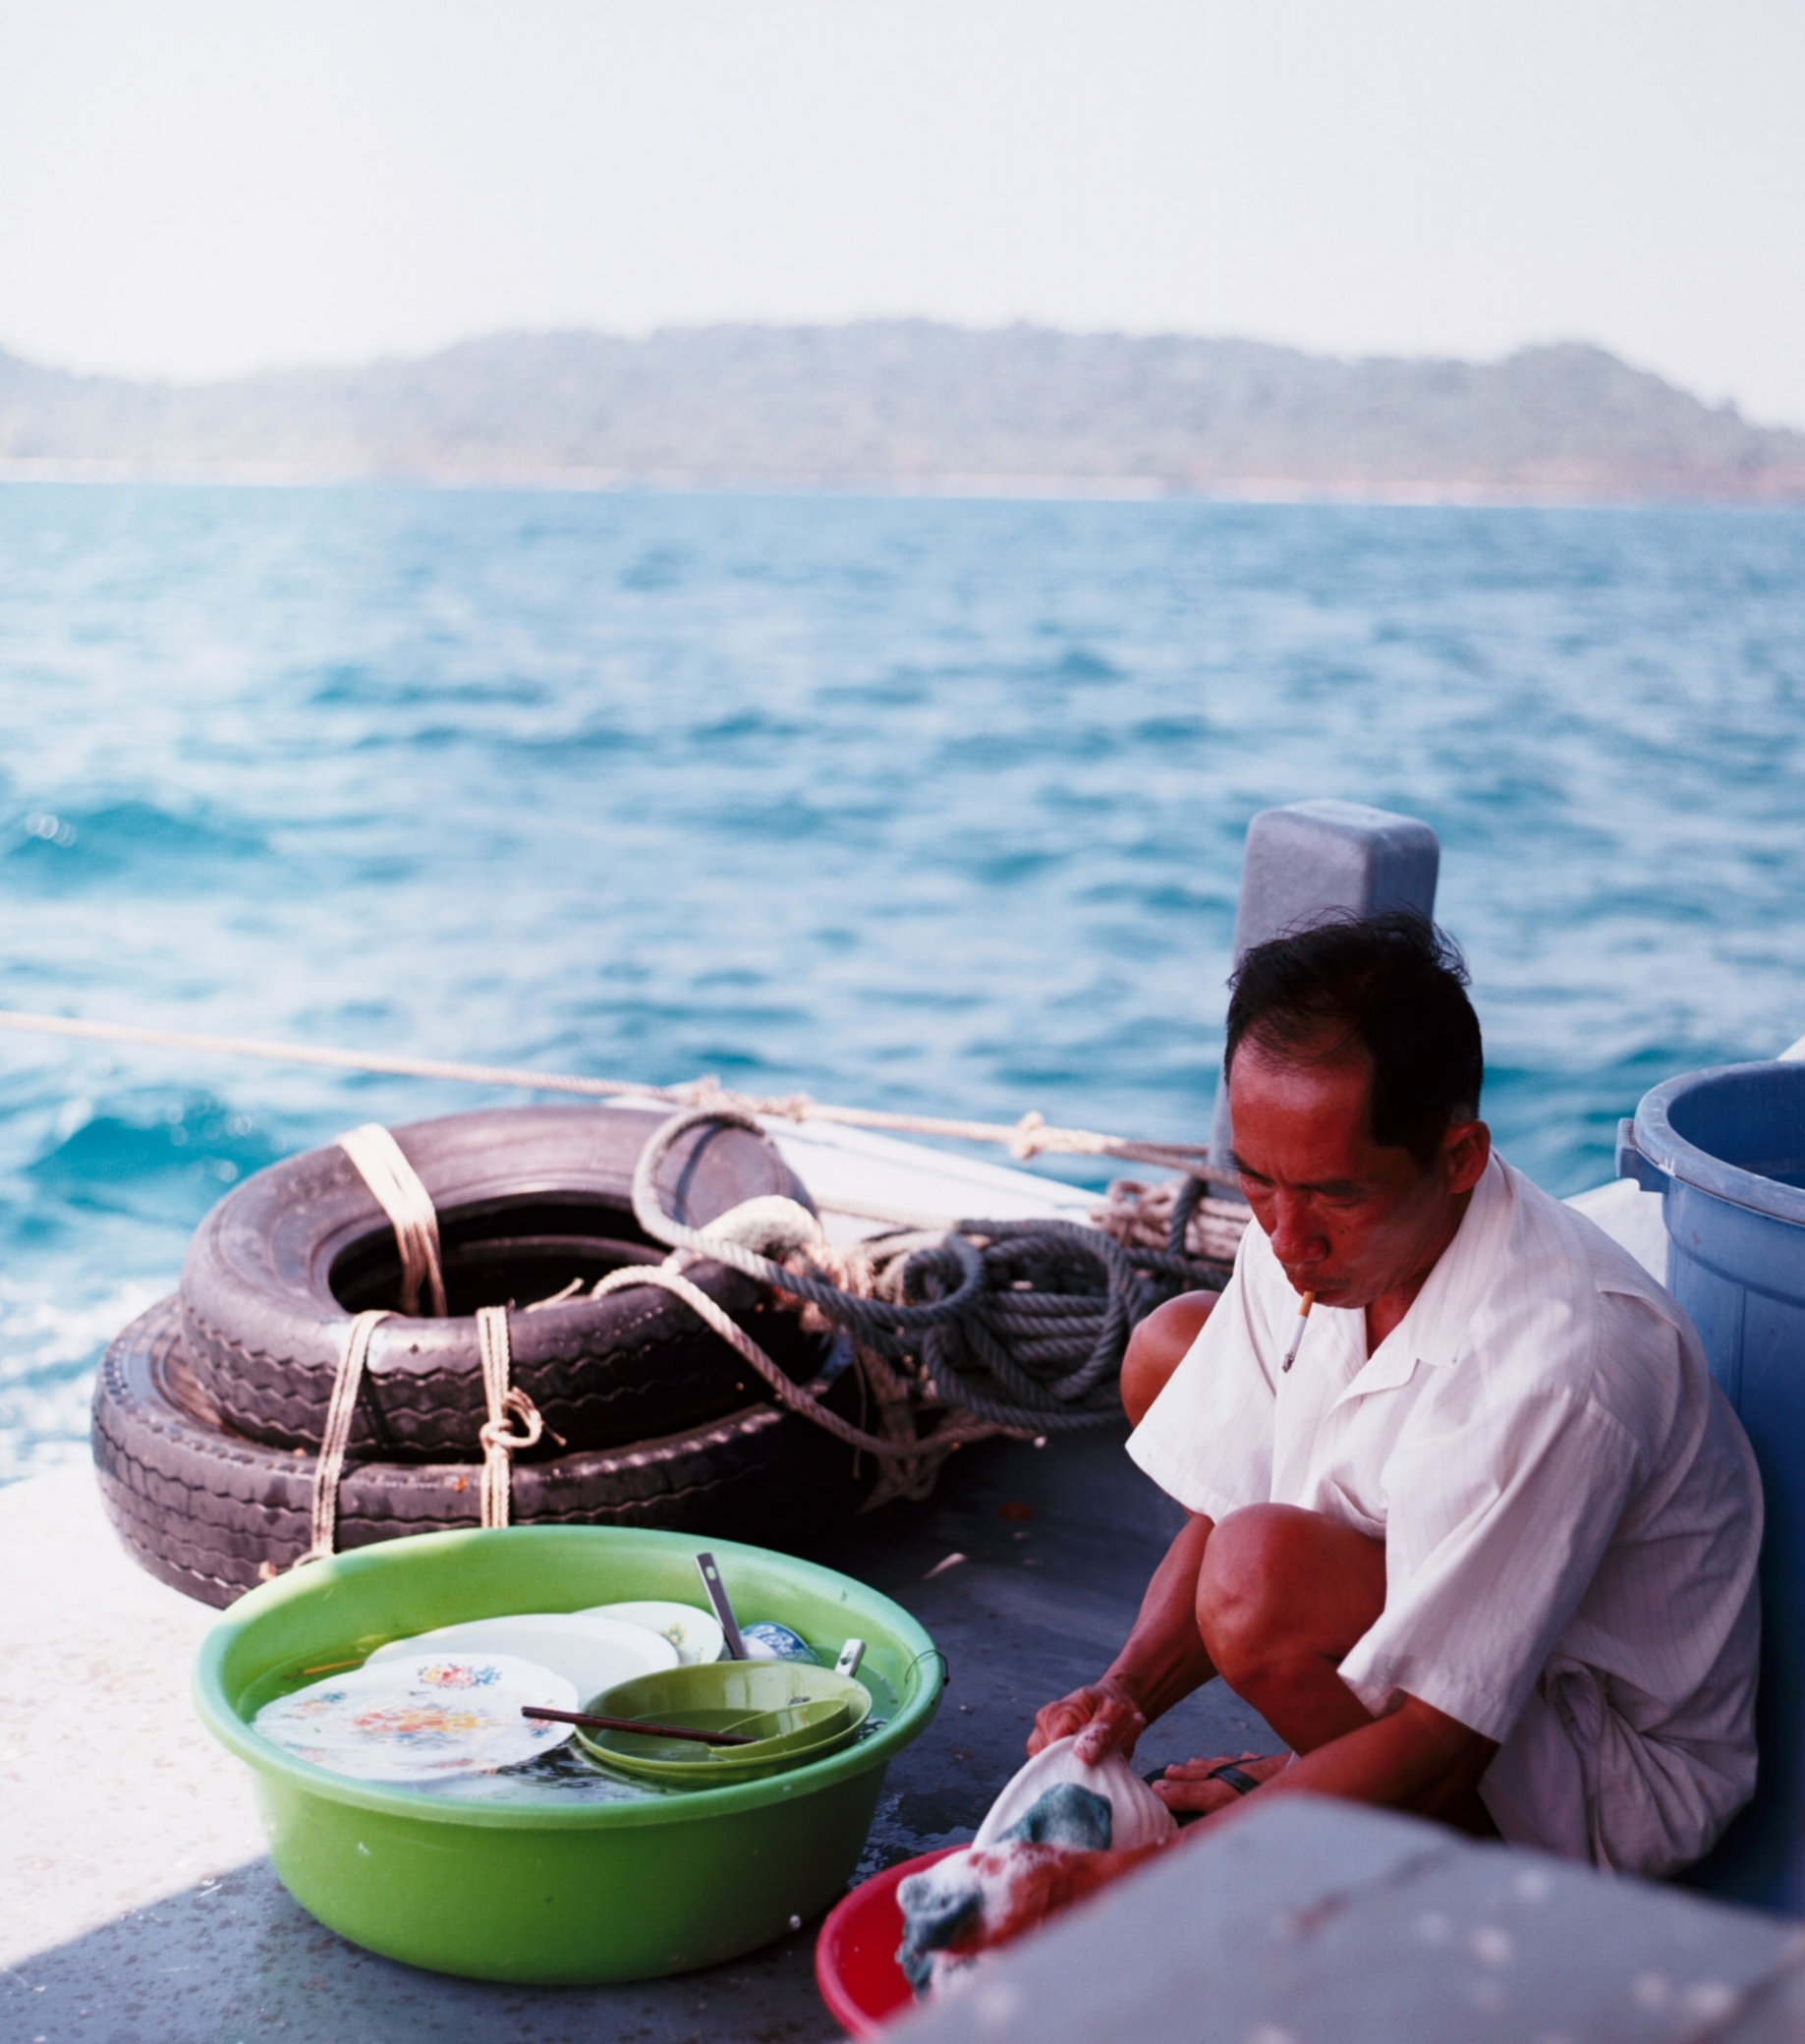 Washing the Dishes at Phu Quoc, Viet Nam. Photo by  Geoffrey Arduini .